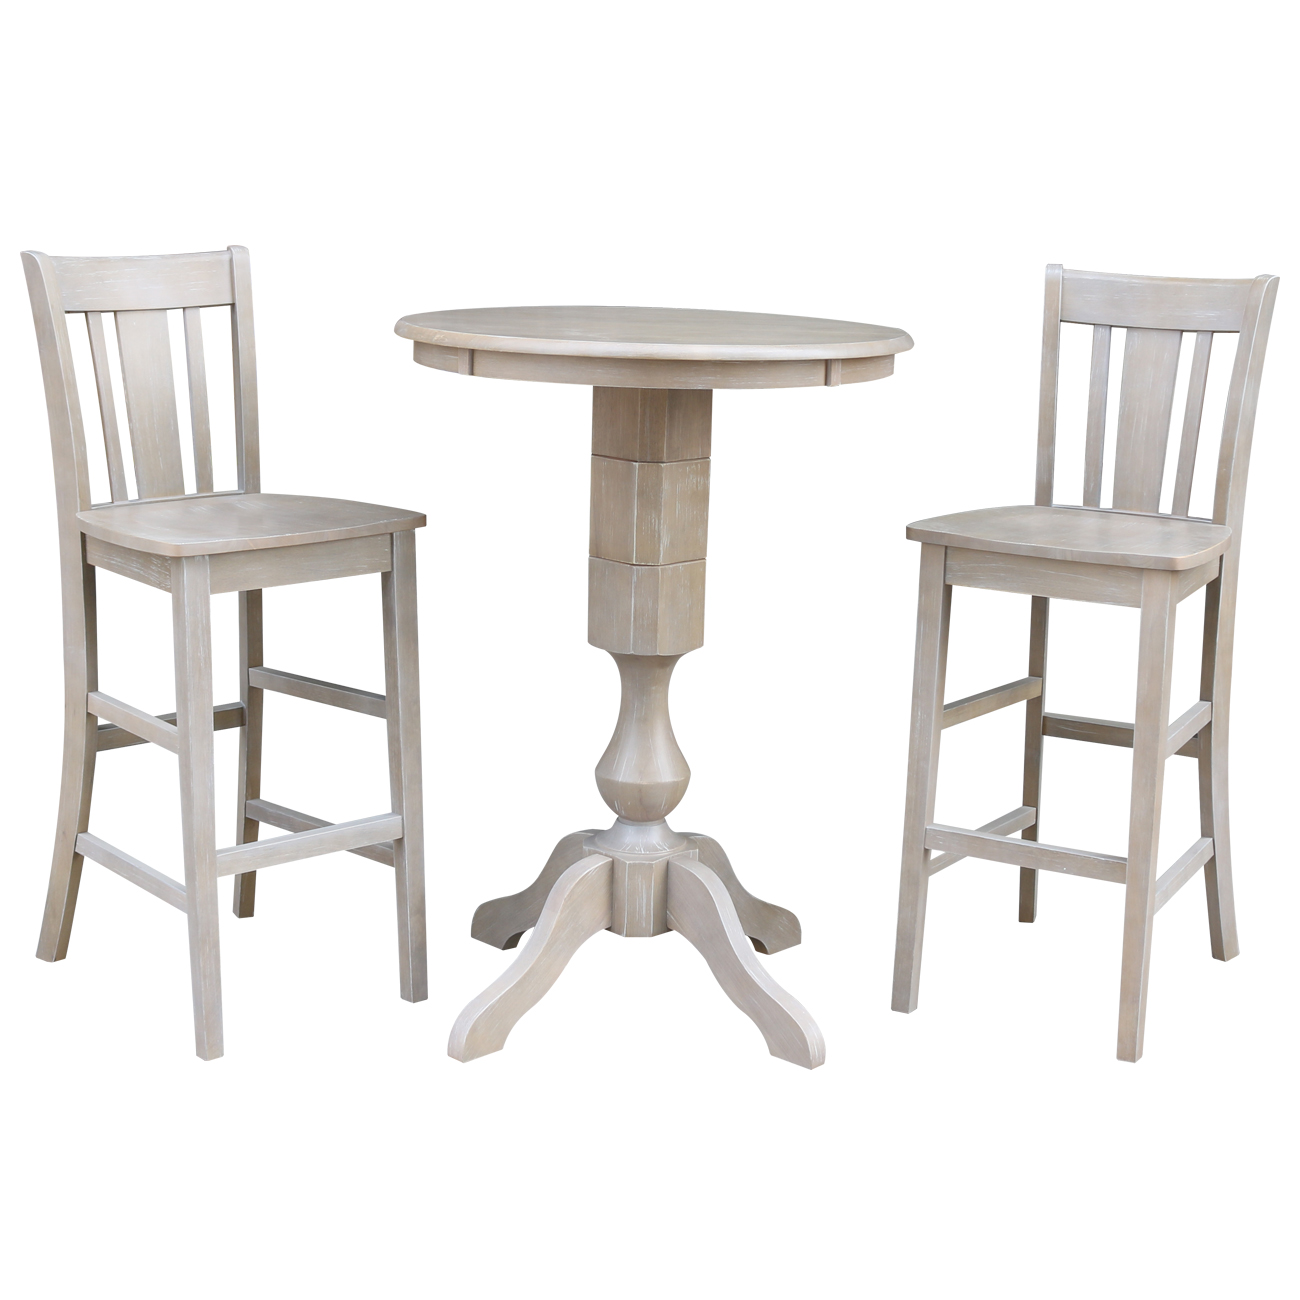 John Thomas Dining Essentials Old World Round Dining Table